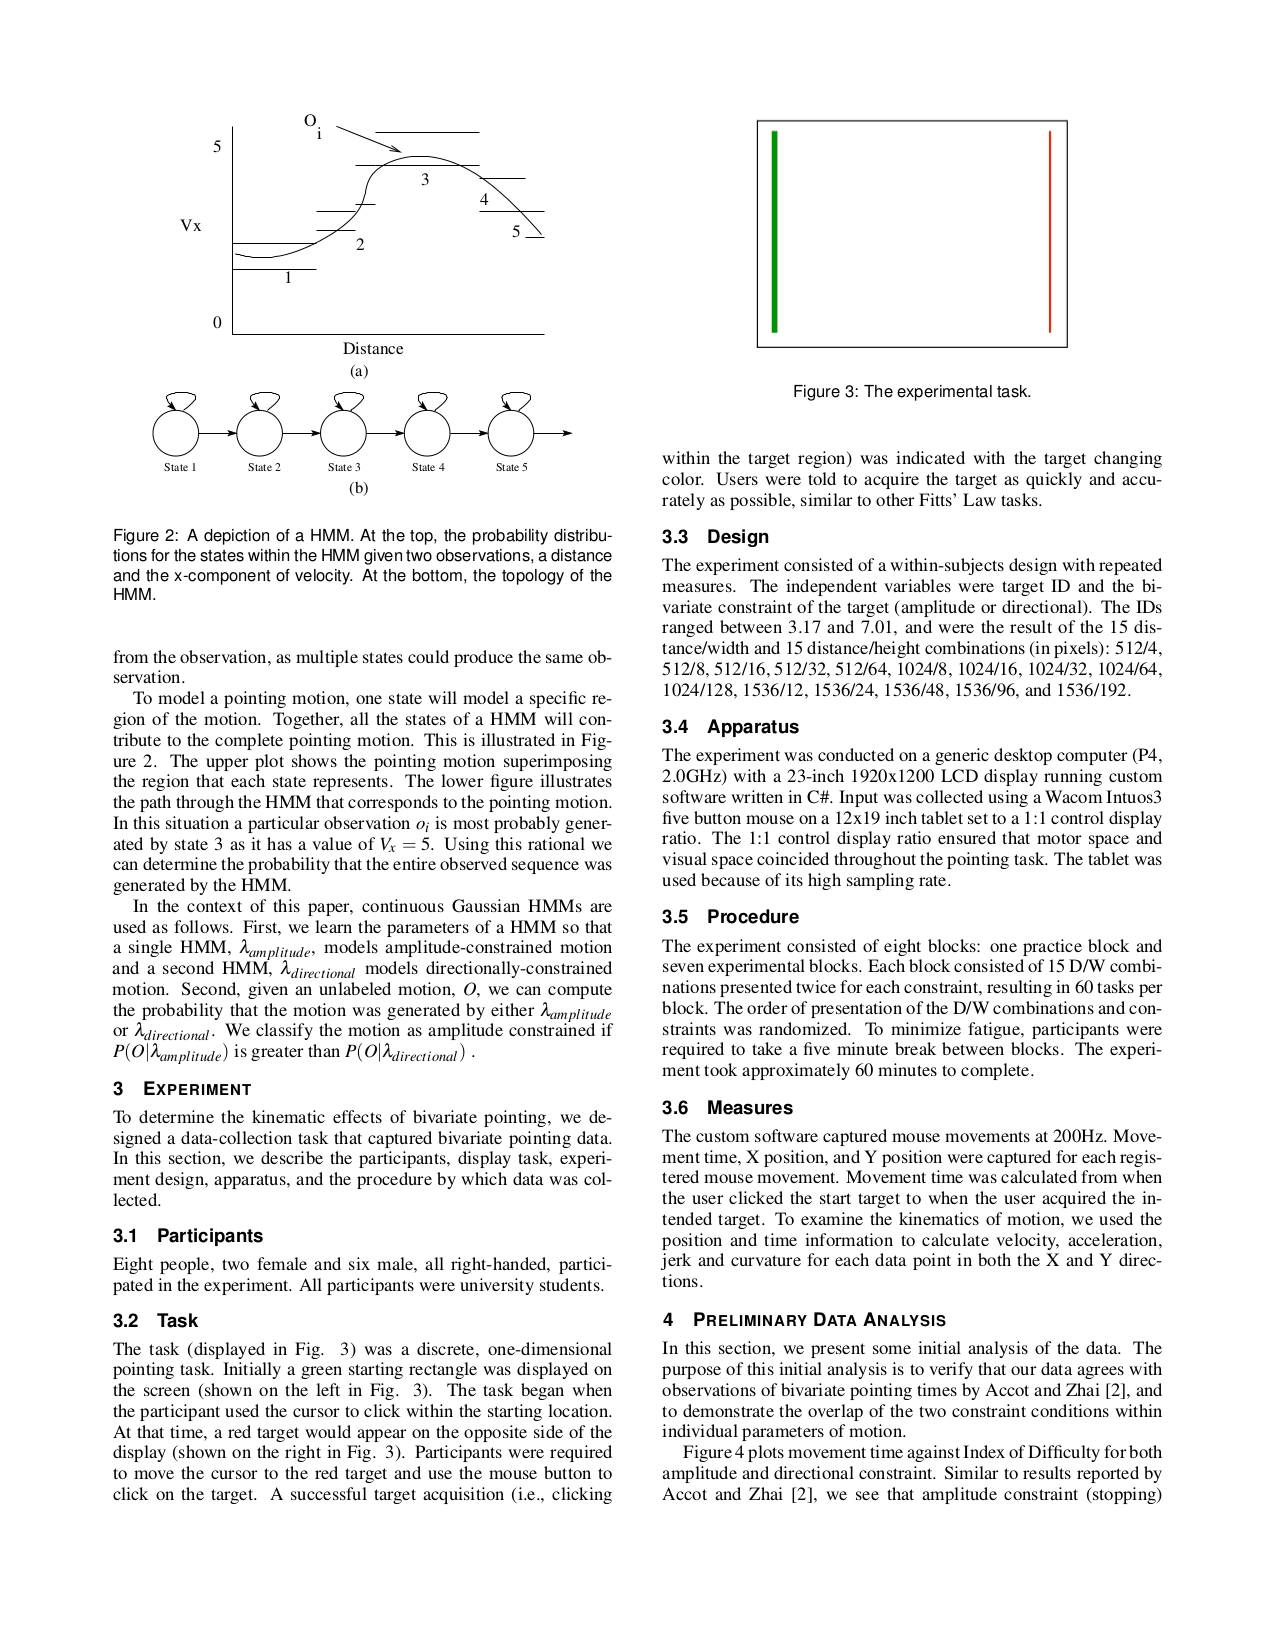 Wacom Mouse Intuos3 12x19 pdf page preview